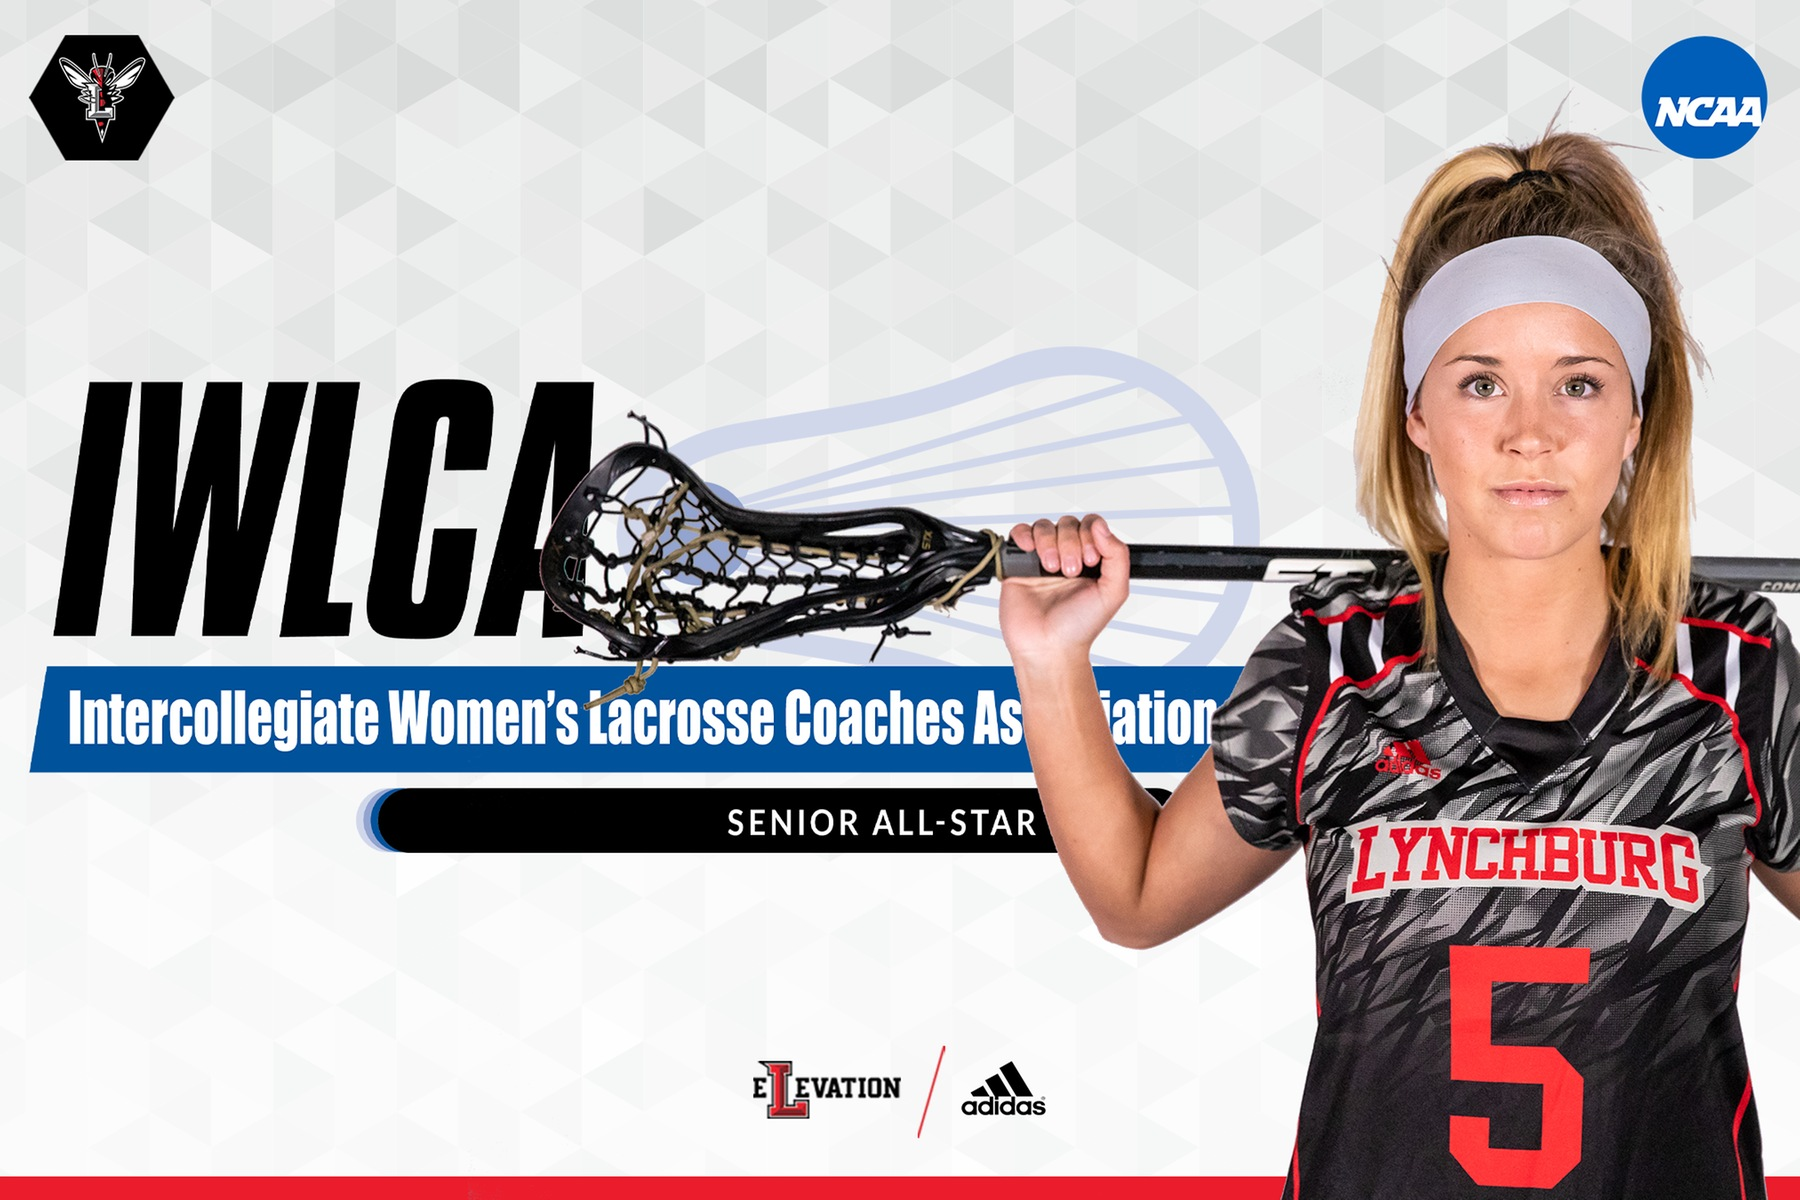 Cutout image of Allie O'Leary in uniform on white background with IWLCA logo